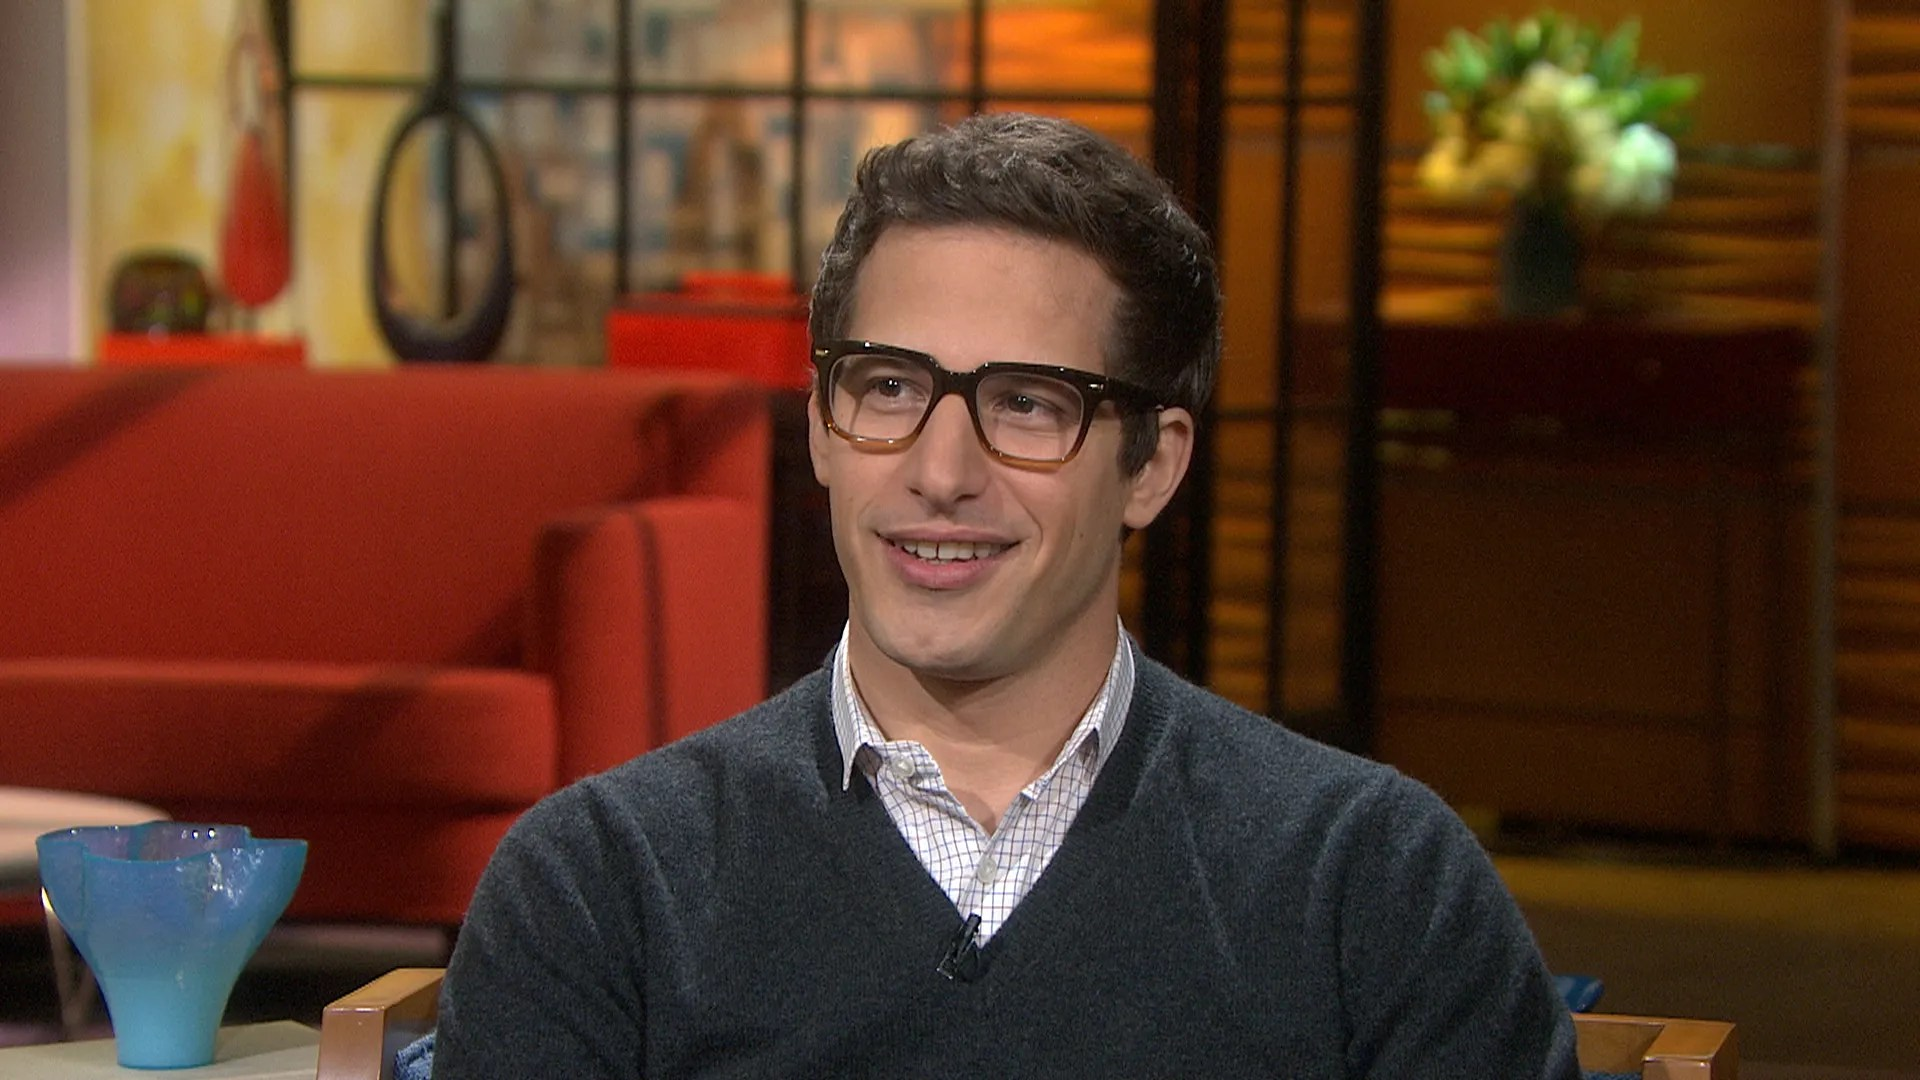 Snl Ends Season With Andy Samberg